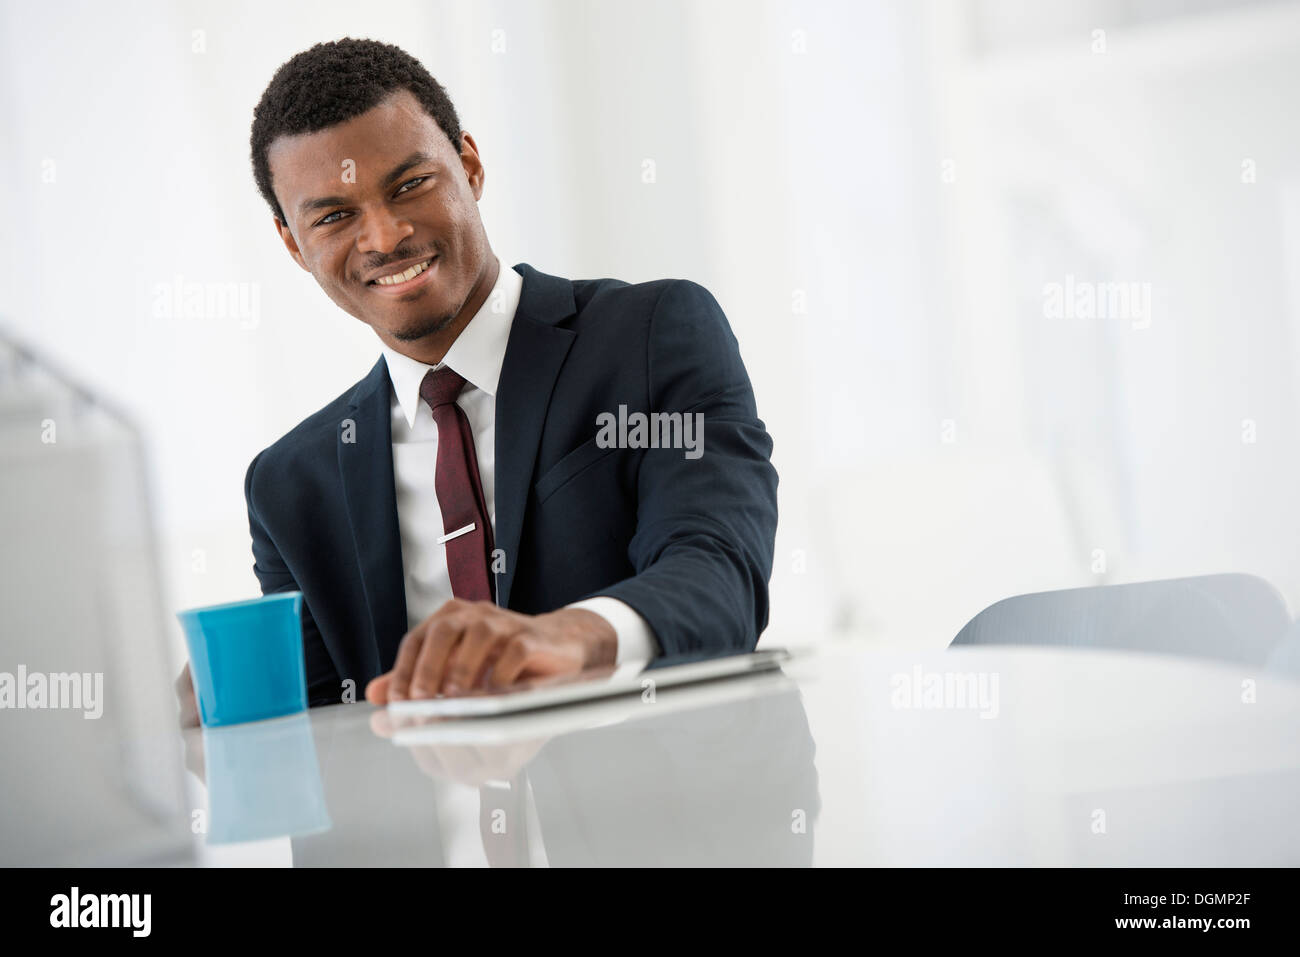 Office interior. A man in a suit with a cup of coffee. A digital tablet on the table. - Stock Image